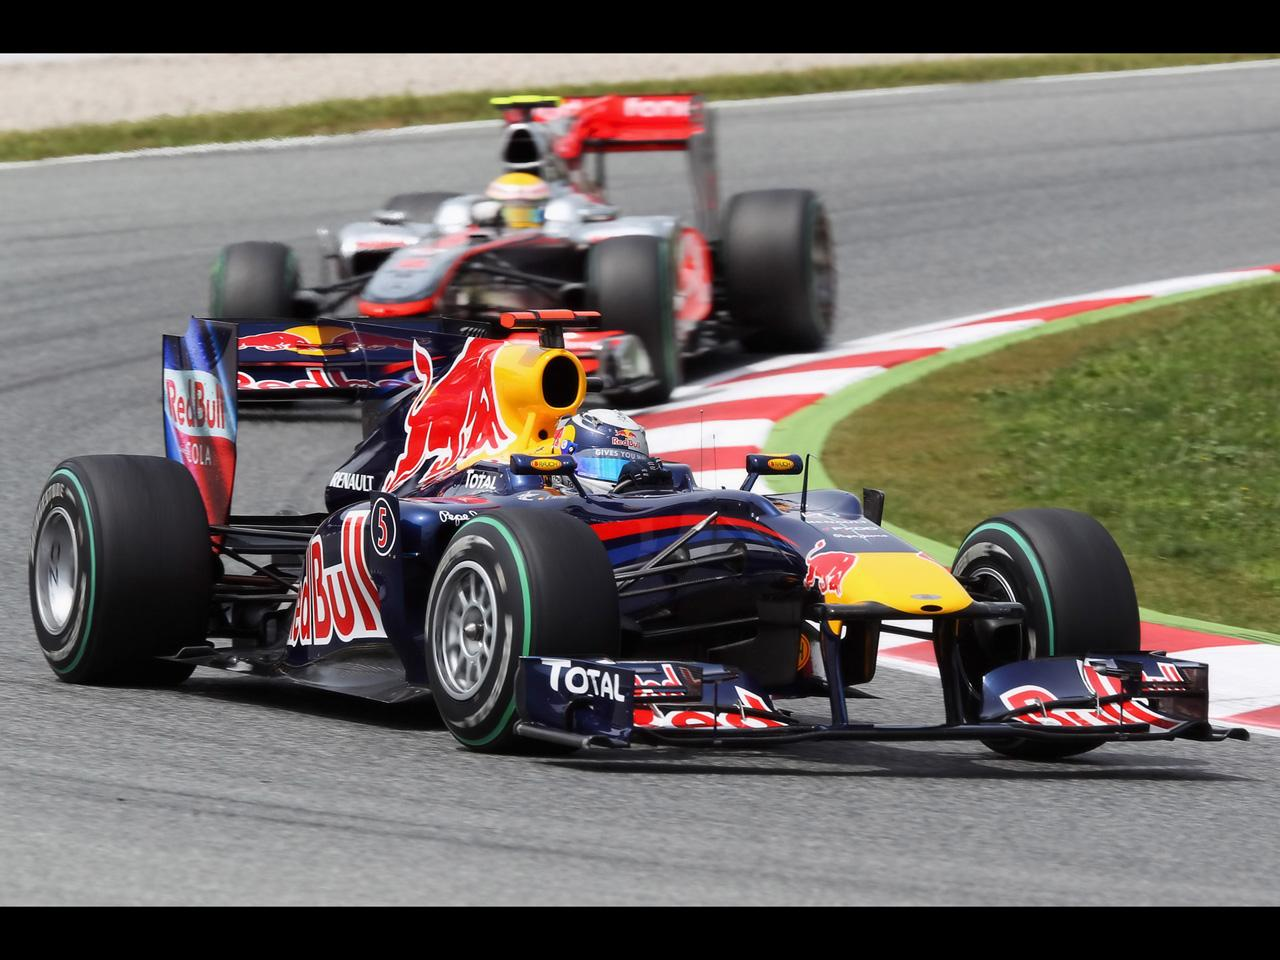 2010 Red Bull Rb6 F1 Wallpapers Cartestimony